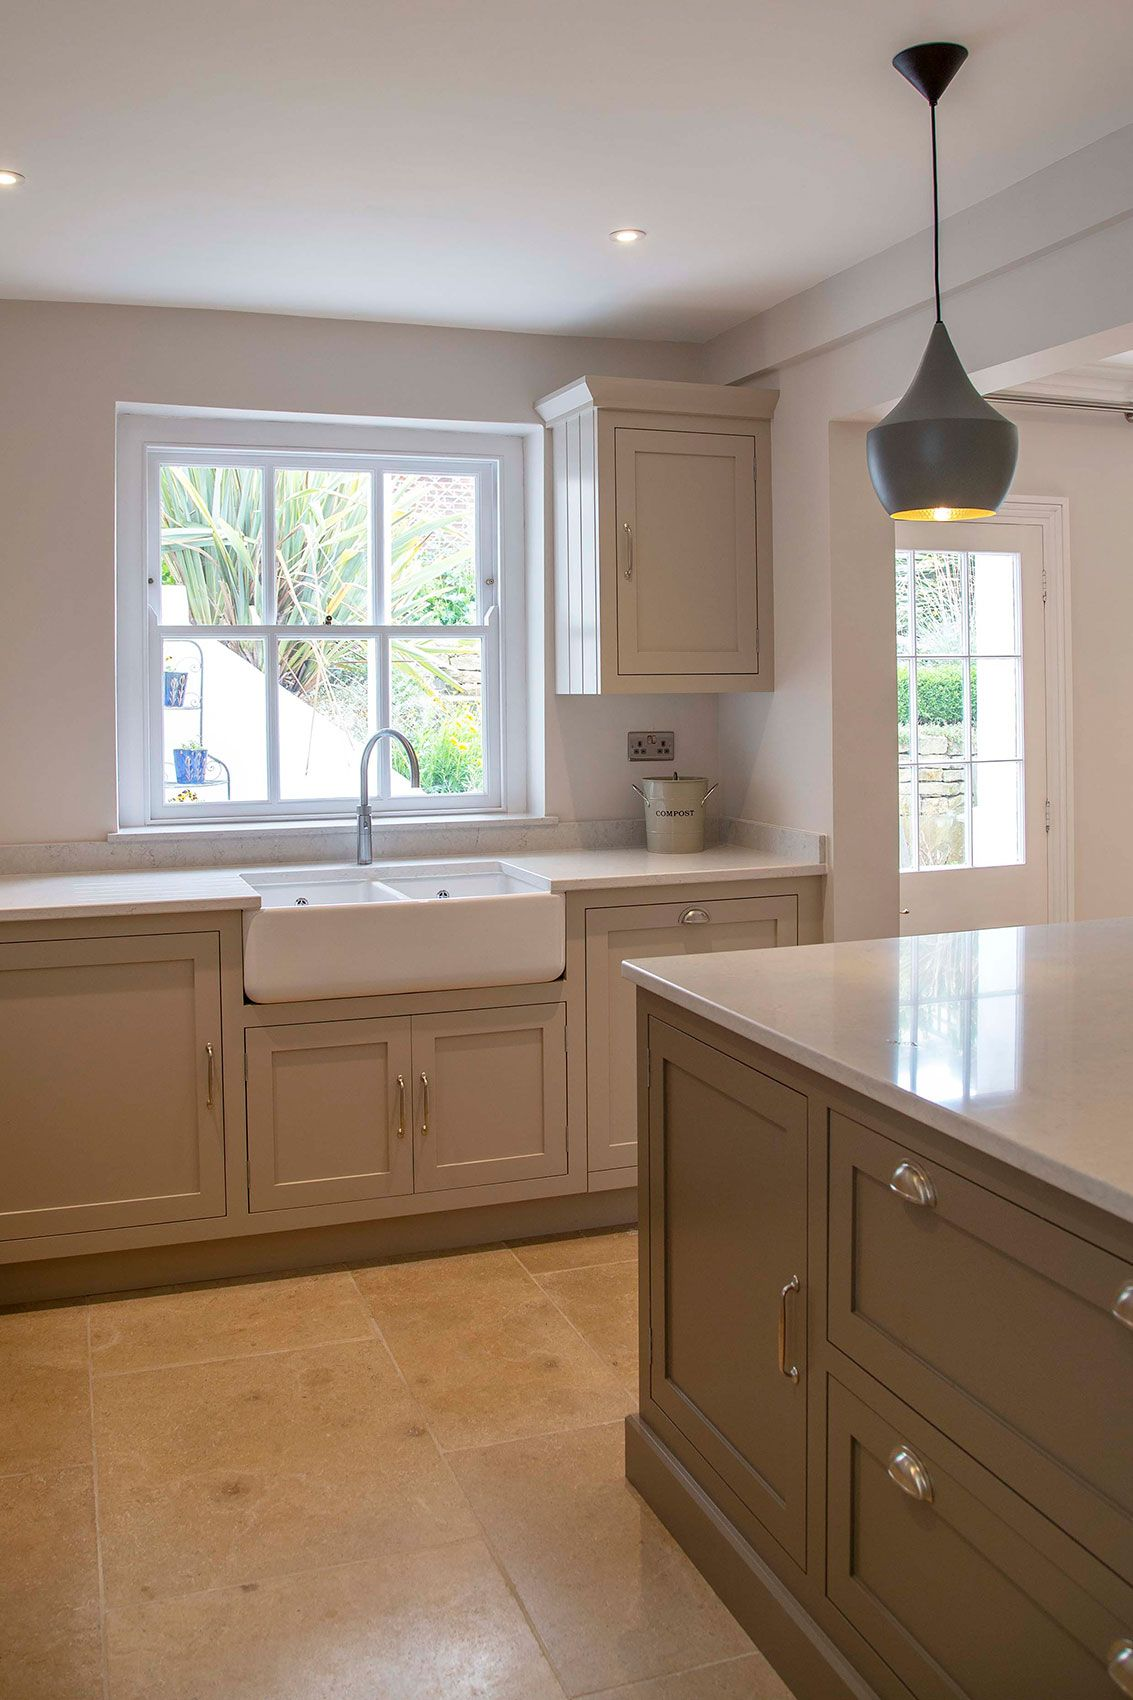 Shaker Kitchens - kitchens often have beautiful views over gardens ...